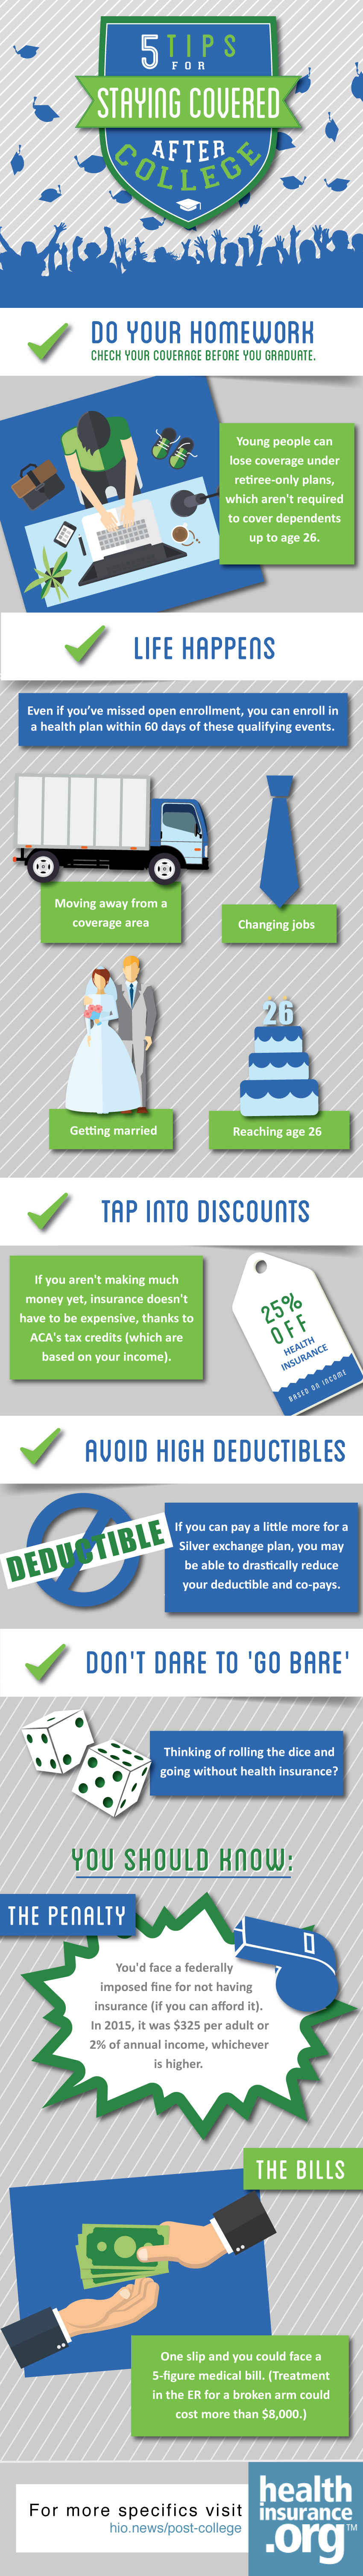 5 ways to stay insured after college graduation | After ...